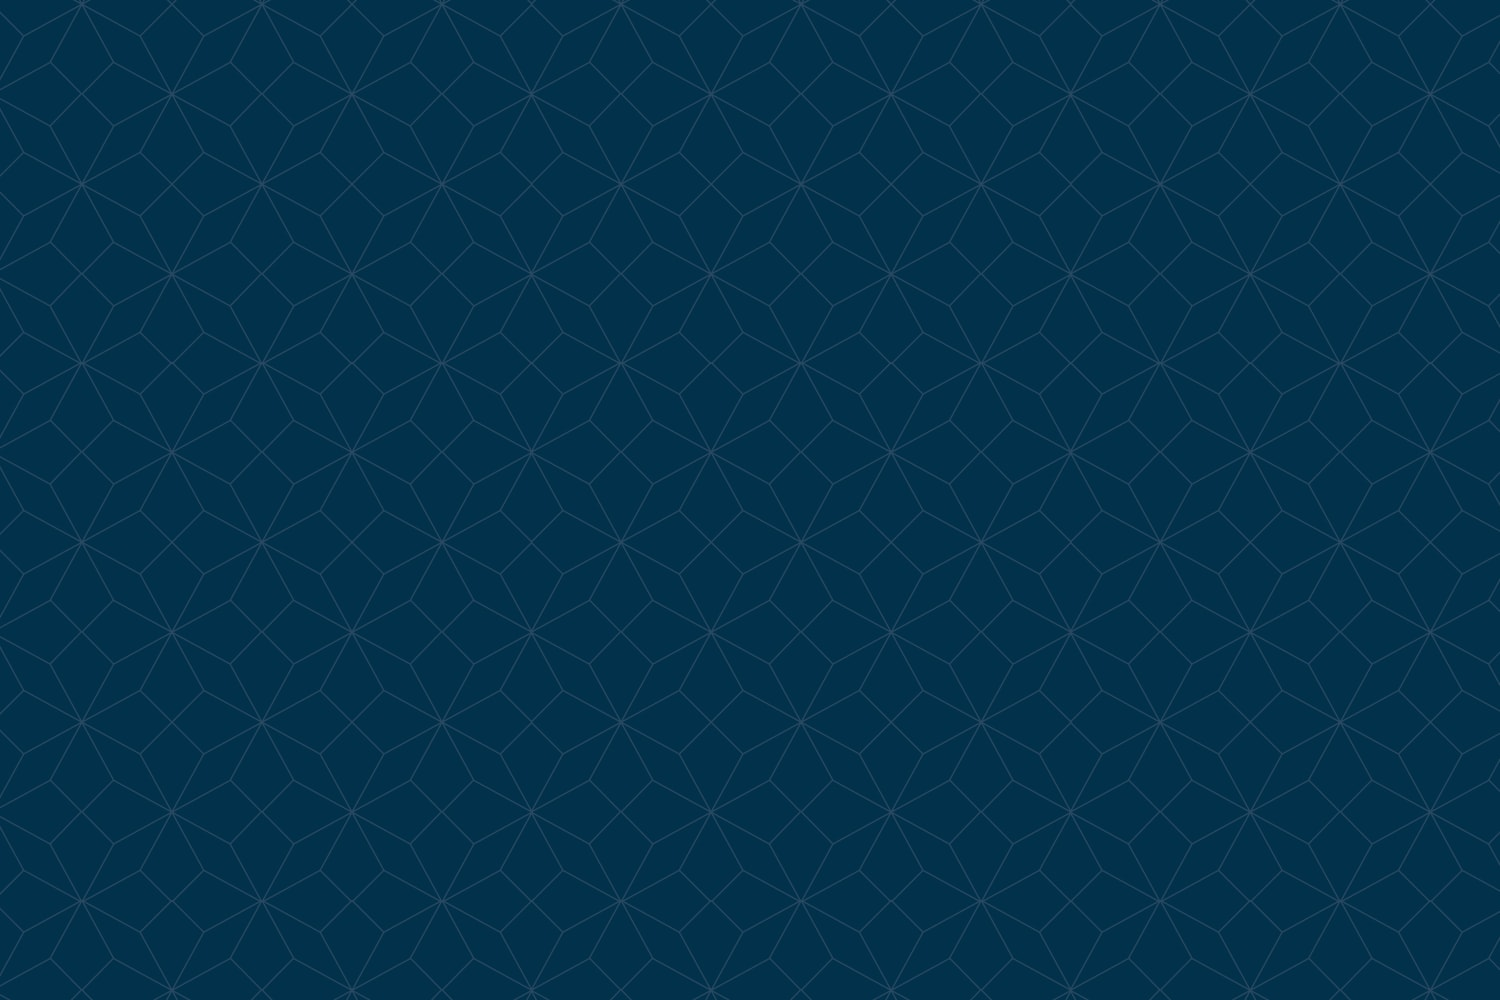 Midnight background with origami pattern